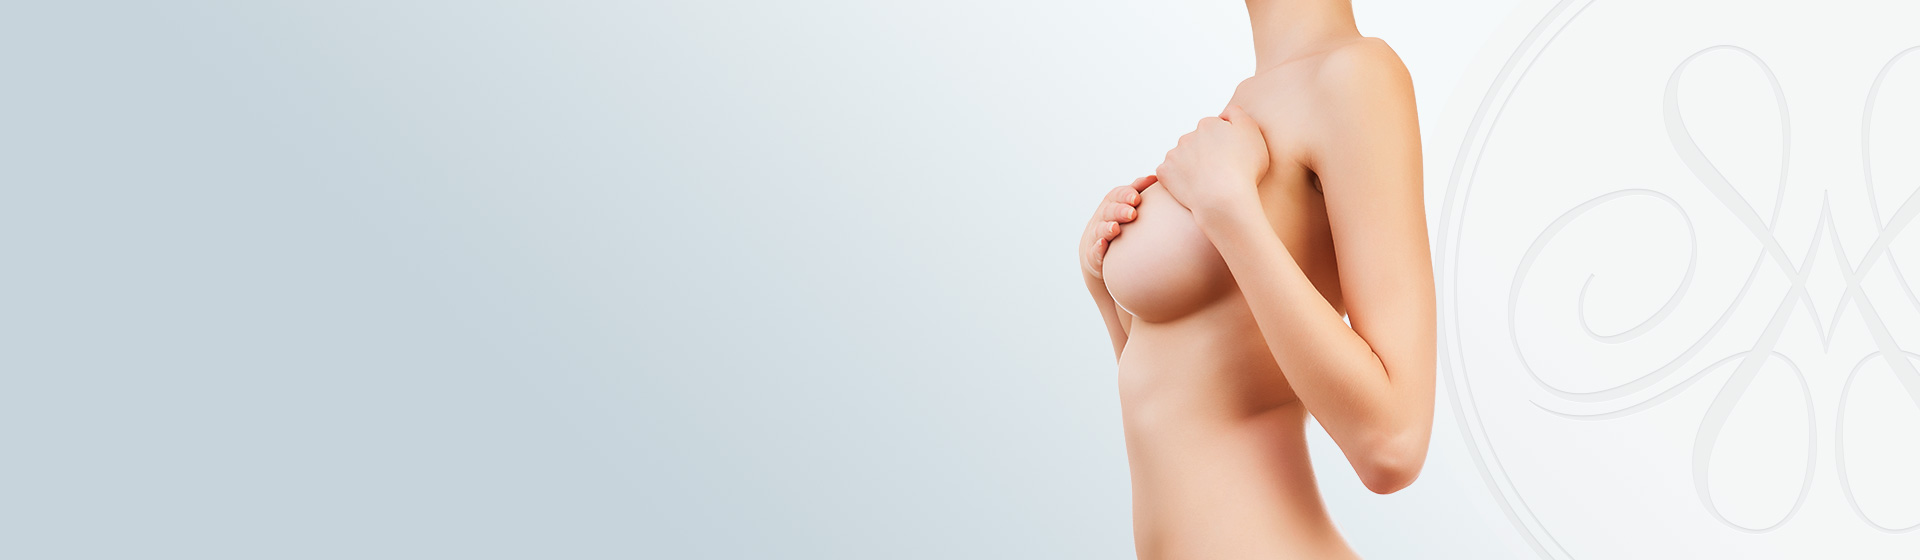 Breast augmentation and complications and hematoma